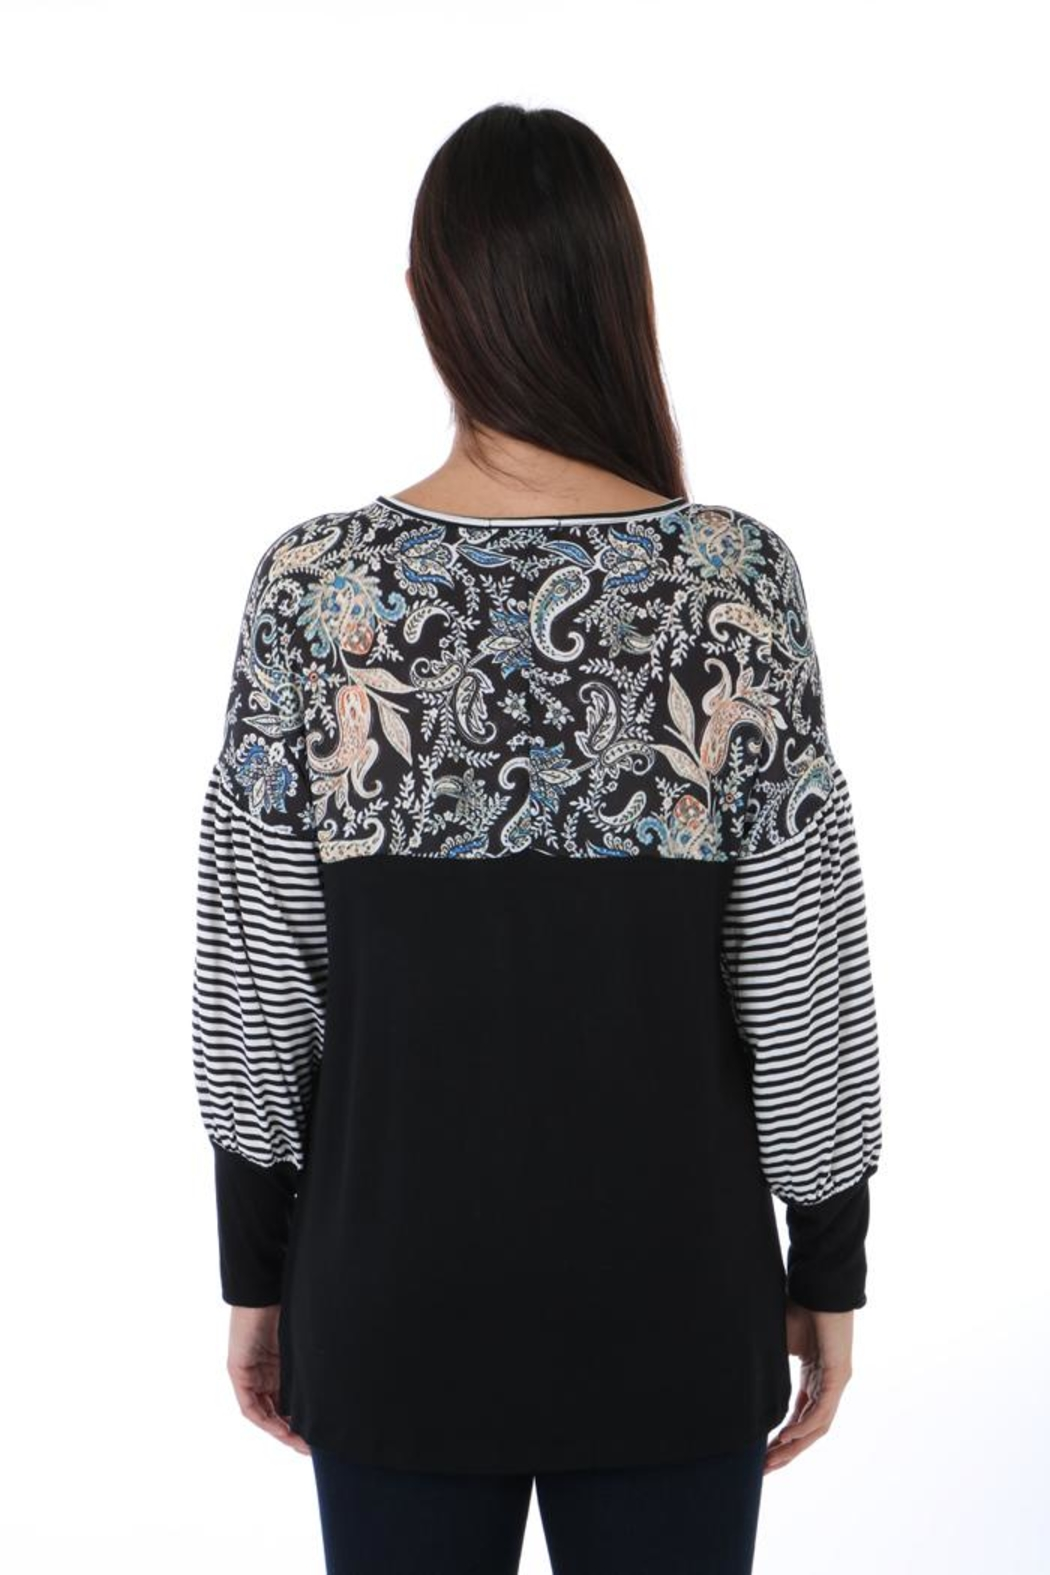 Fine Line Imports Mixed Print Top - Side Cropped Image